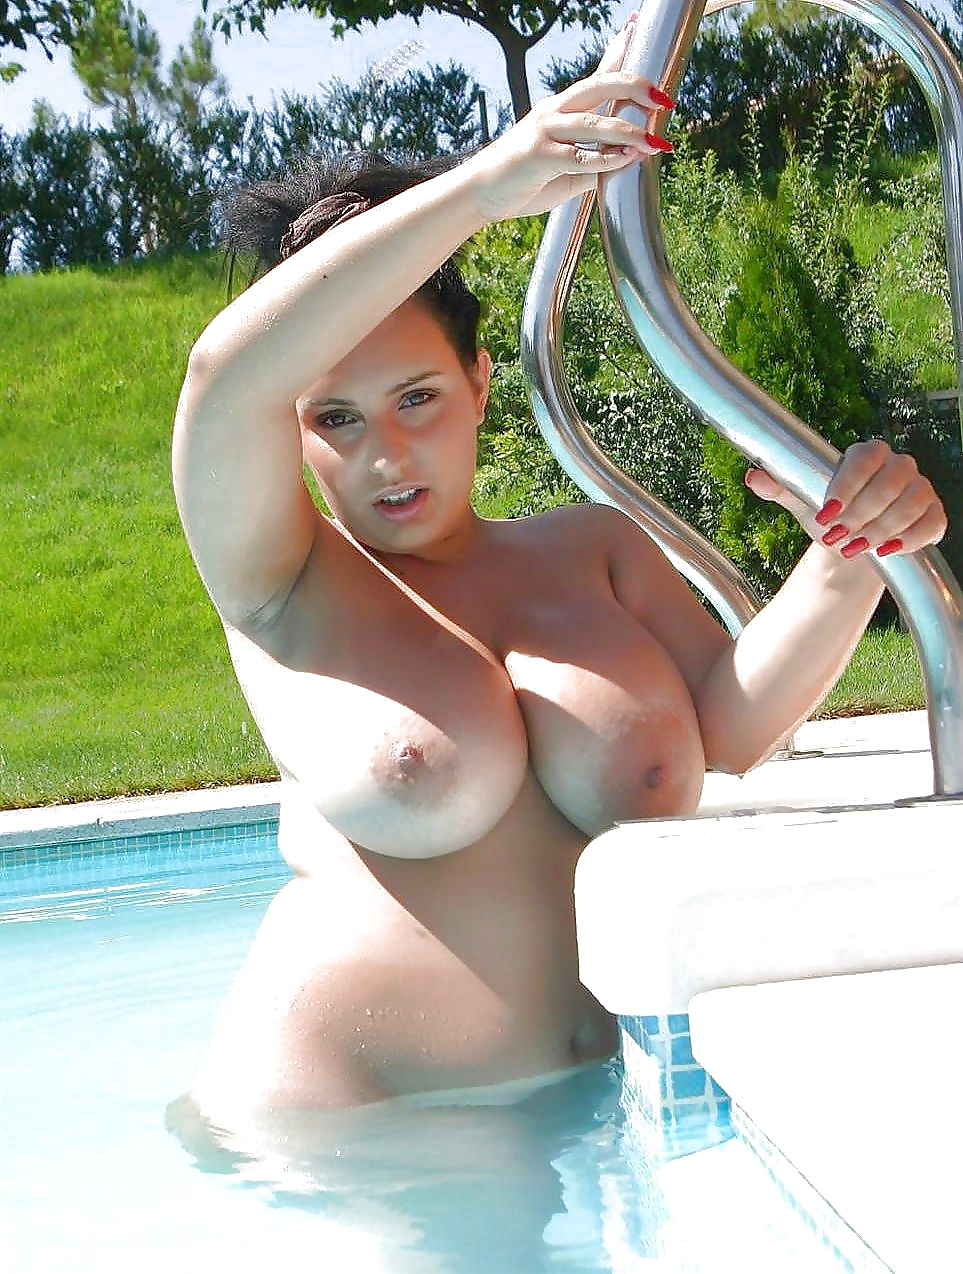 Moms With Big Tits Fucks In The Pool